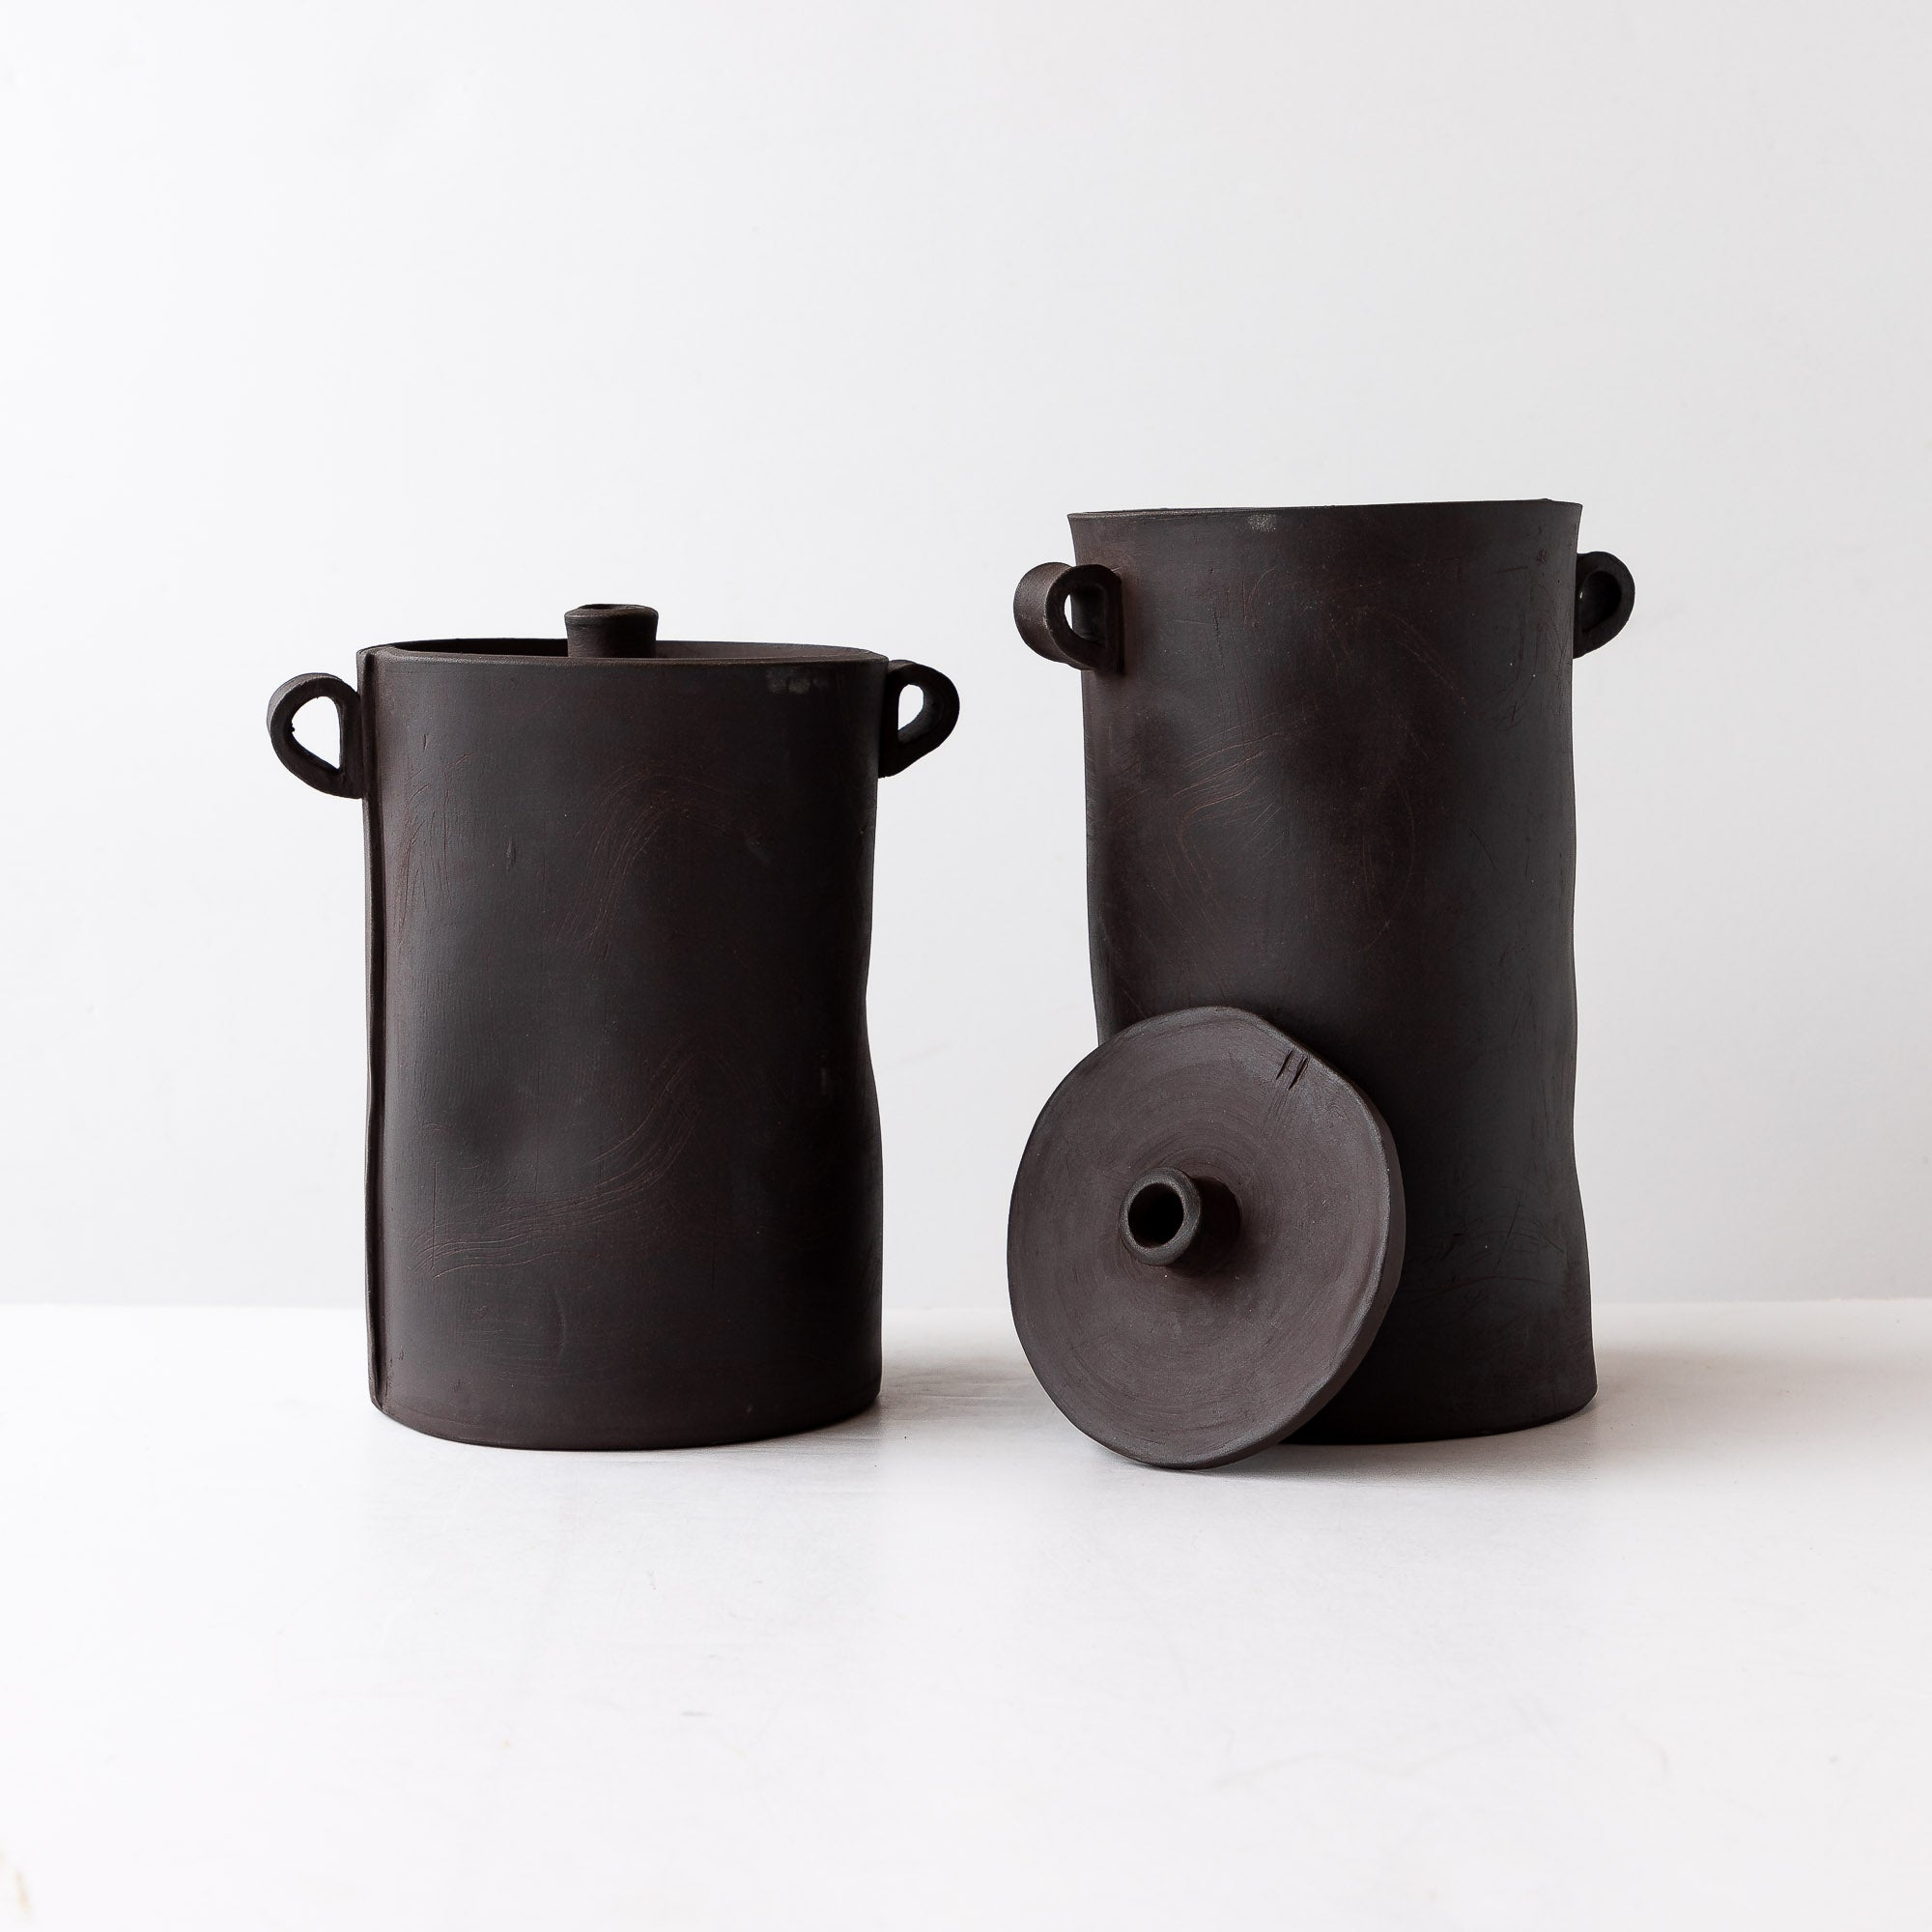 Two Large Handmade Storage Jars in Grey Stoneware - Sold by Chic & Basta